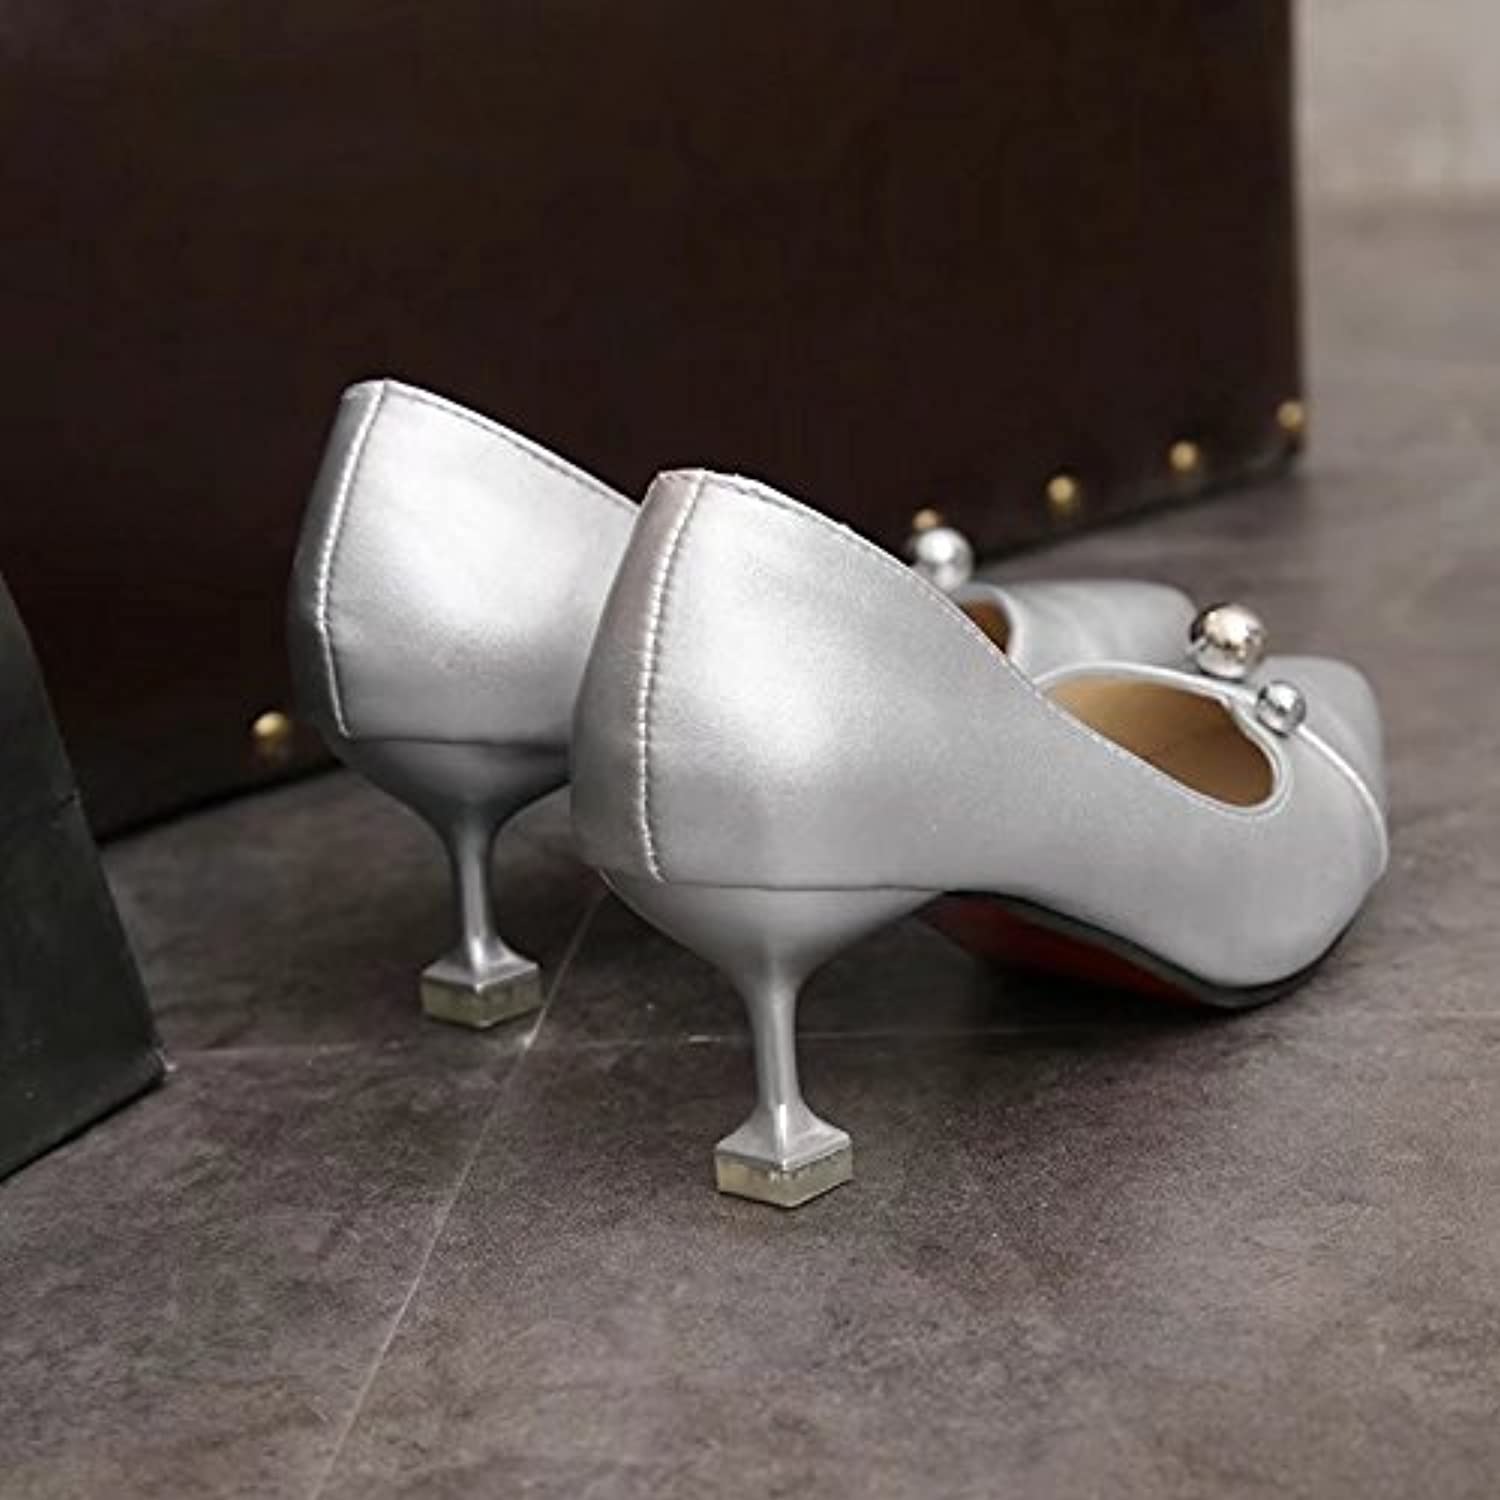 WYMBS Autumn and Winter Gifts Women's shoes with Pointed Tips